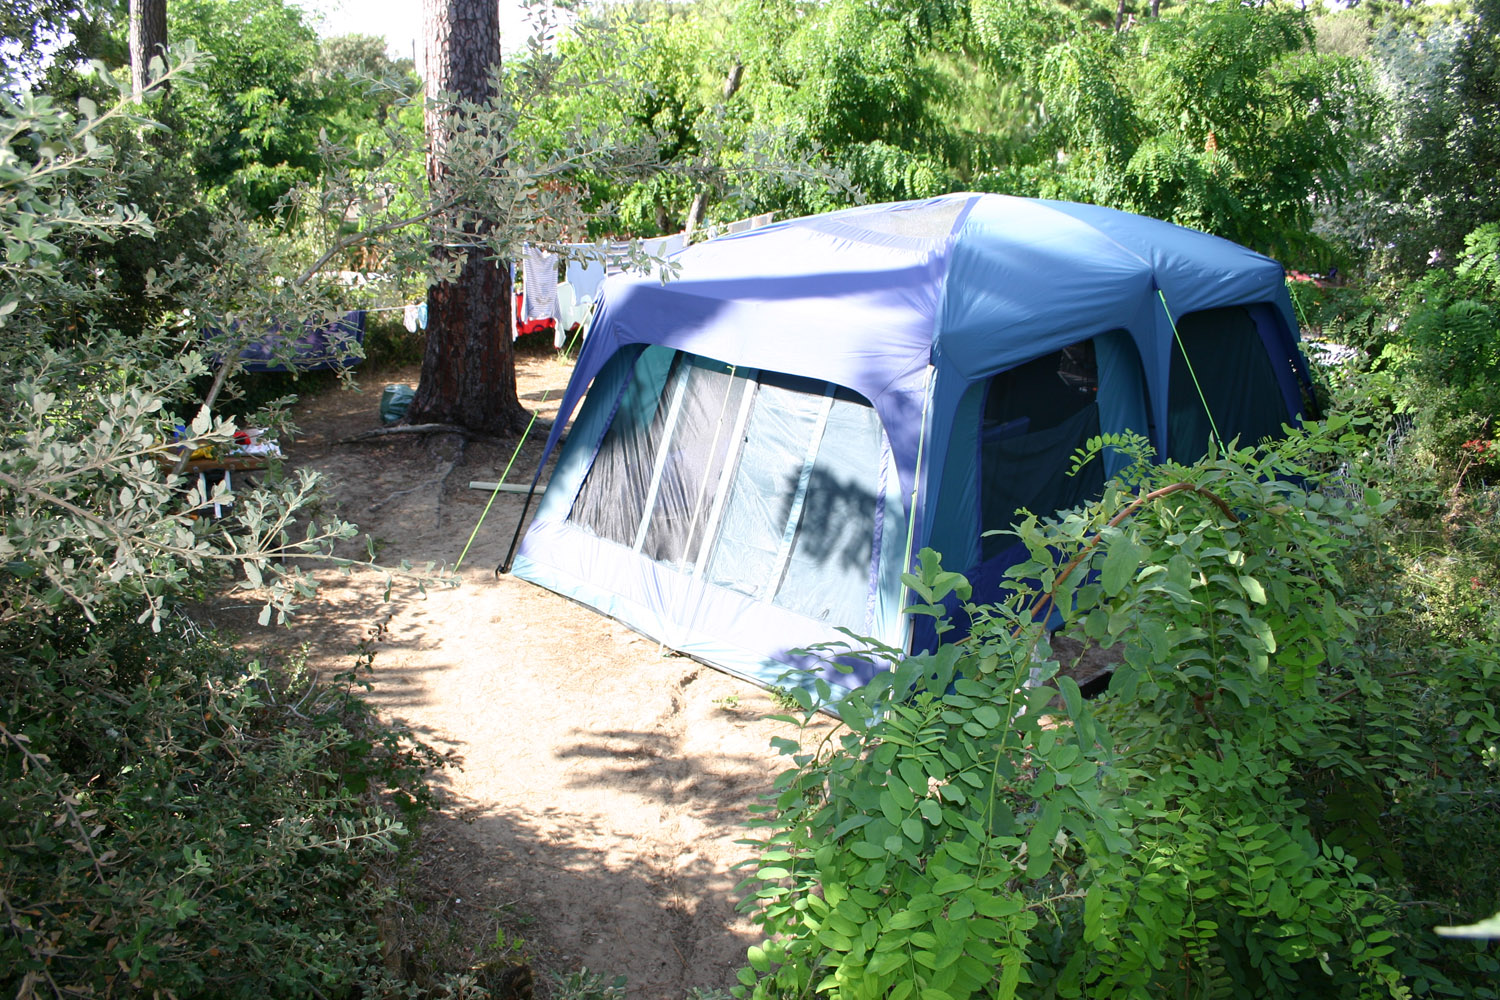 Tent pitch - camping in nature by the sea in Charente-Maritime